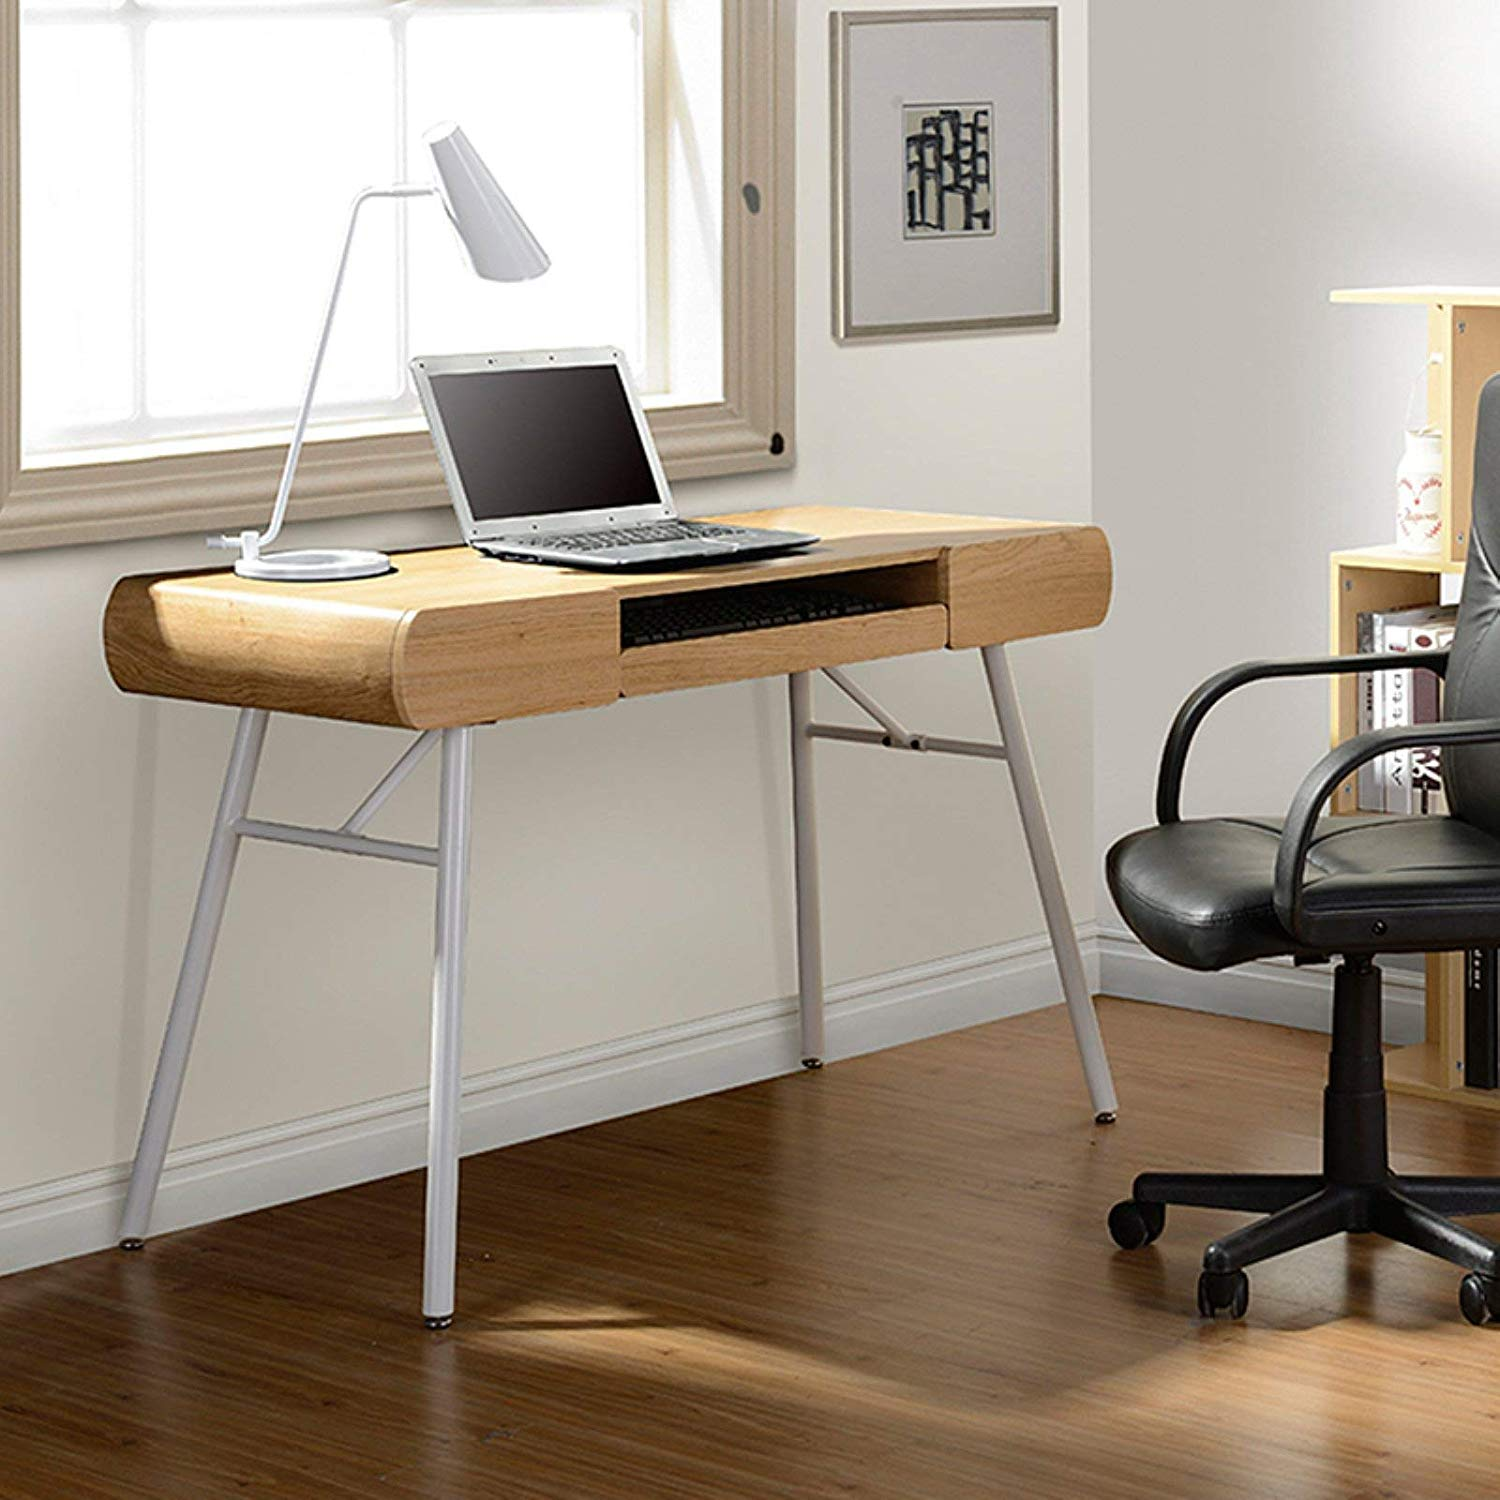 Contemporary Computer Desk, Rounded Edges, Durable, Powder-Coated Steel Legs, Office Furniture, Curved Ends, Wood, Two Side Drawers, Bundle with Our Expert Guide with Tips for Home Arrangement